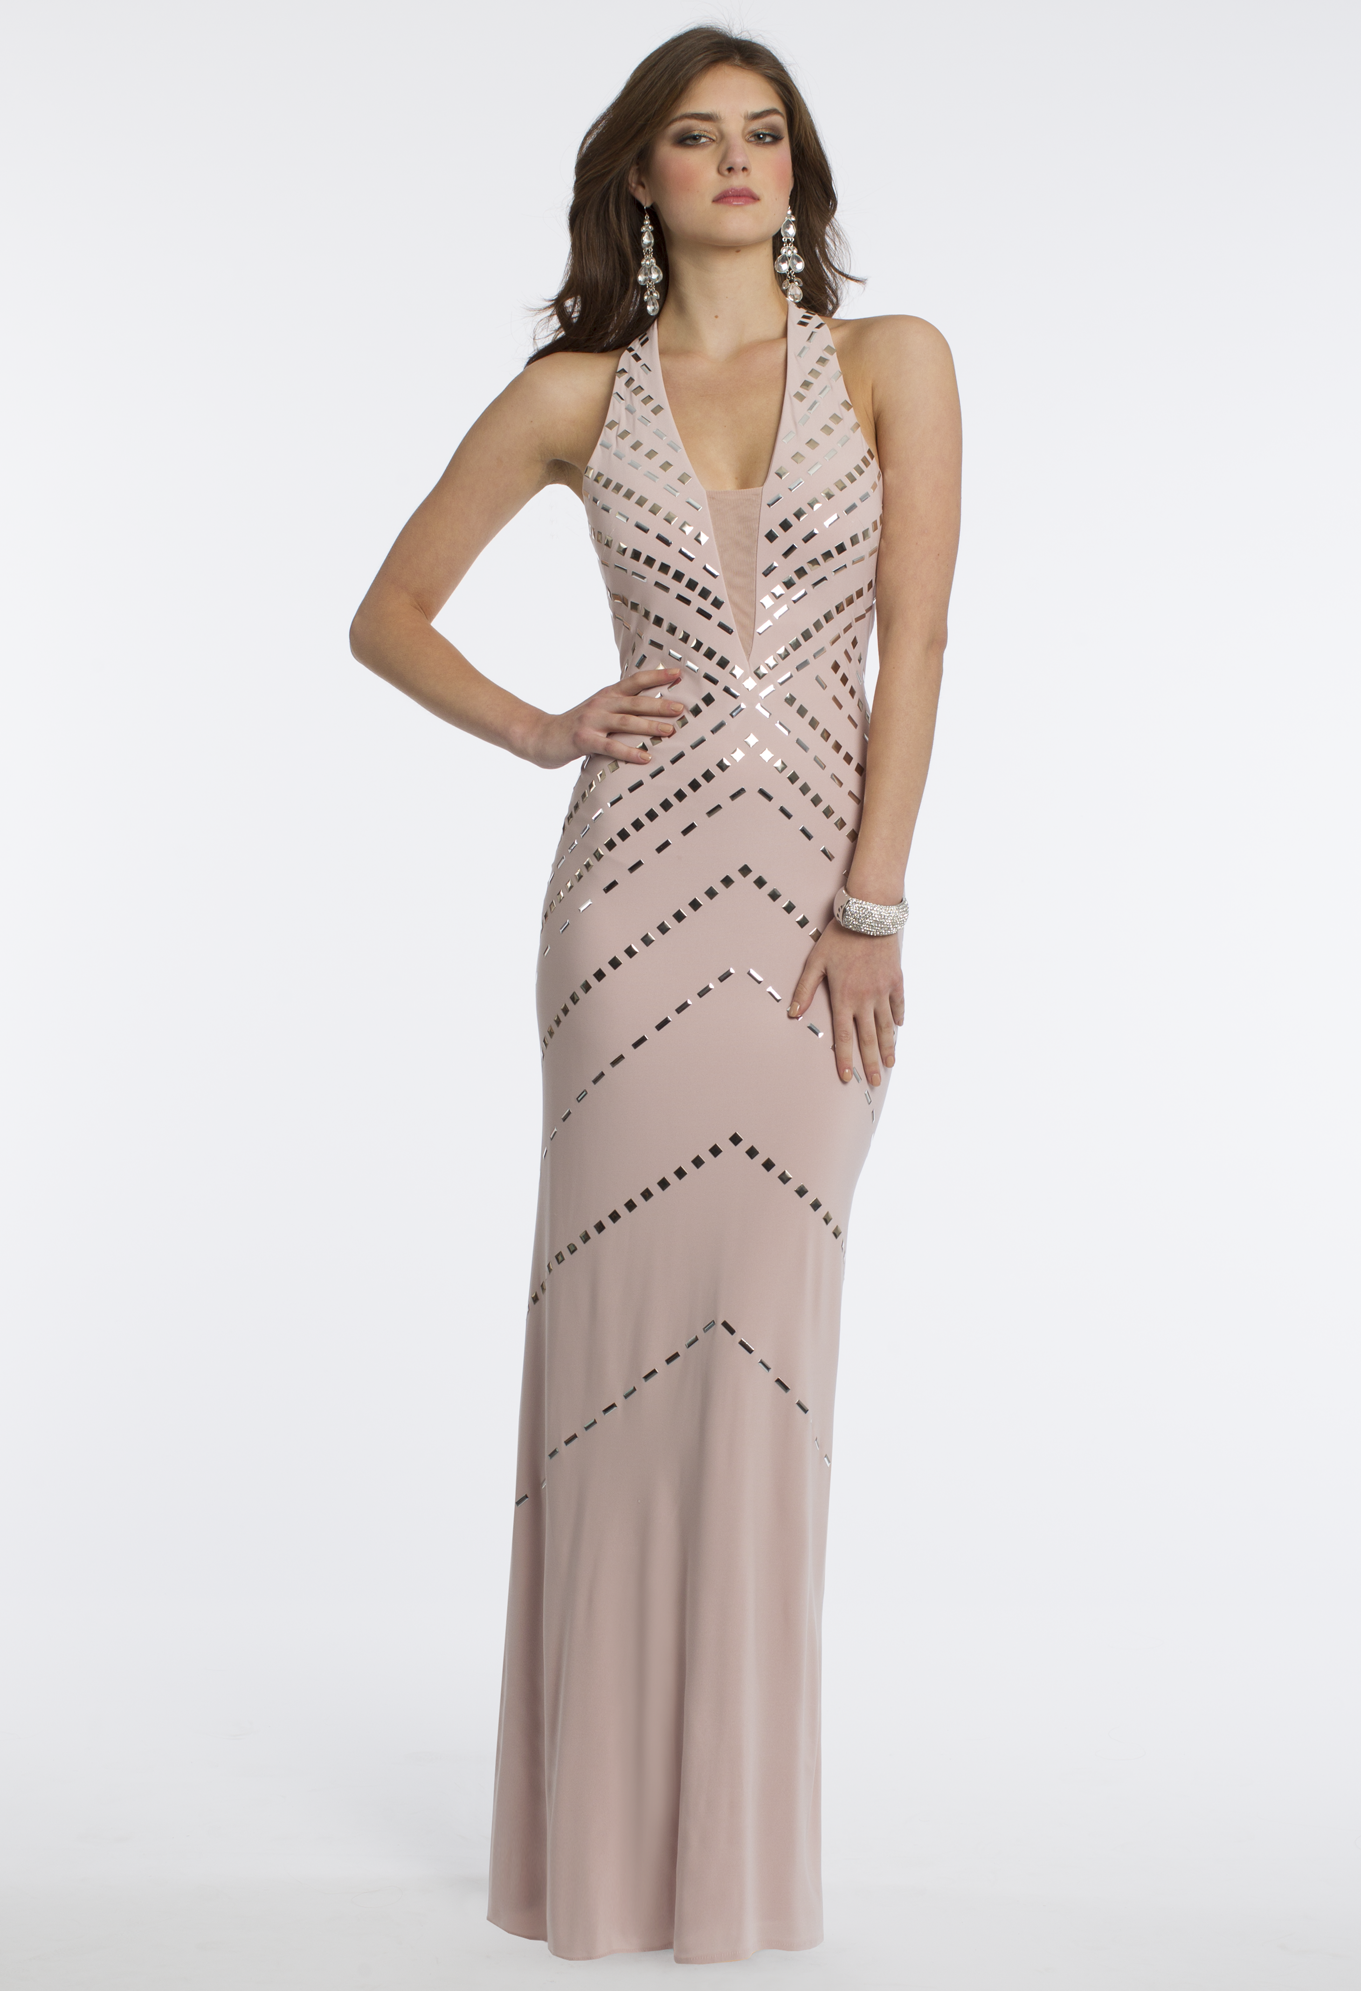 Camille La Vie Jersey Long Studded Halter Prom Dress in Blush Pink ...